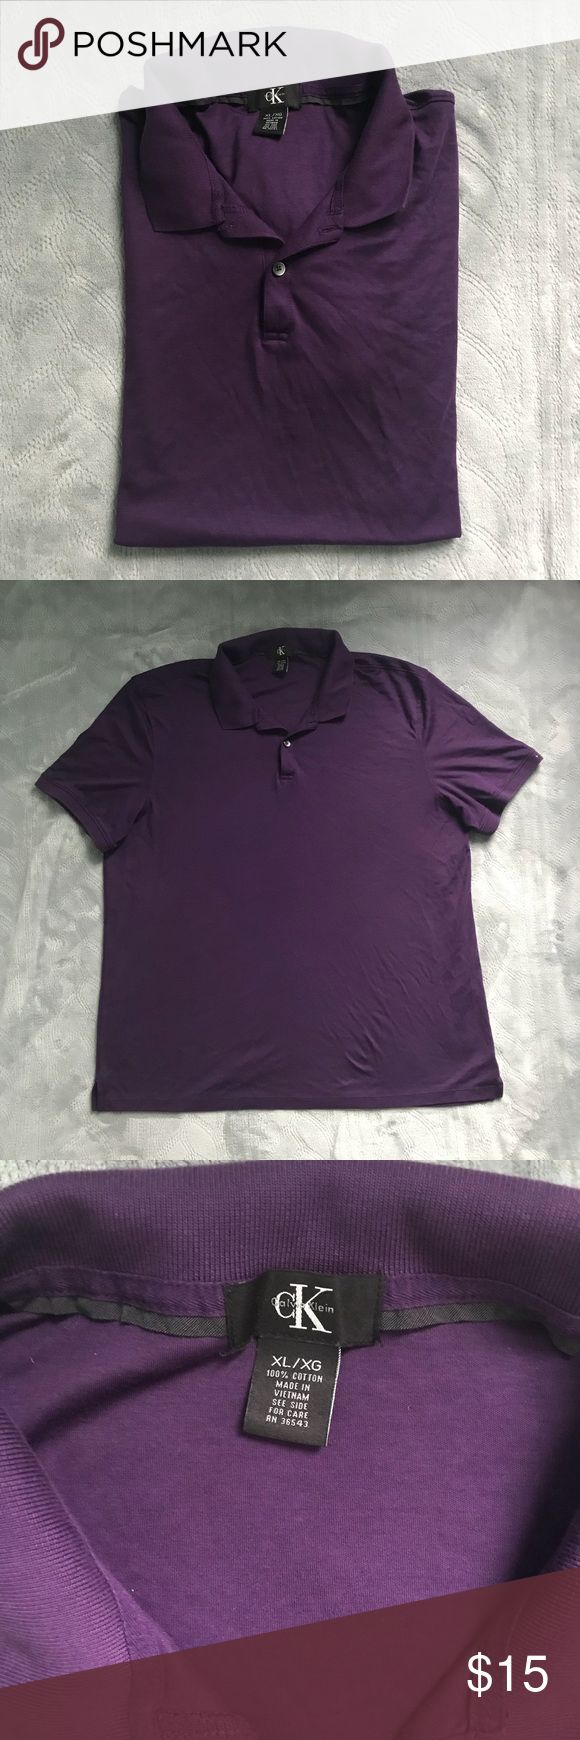 Calvin Klein XL Purple Polo Shirt Calvin Klein Purple Polo Shirt In Size XL Has only been used once, its in great conditions, 100% cotton, very soft. It has an extra button on the care label. Feel free to ask me any questions you might have! Calvin Klein Shirts Polos